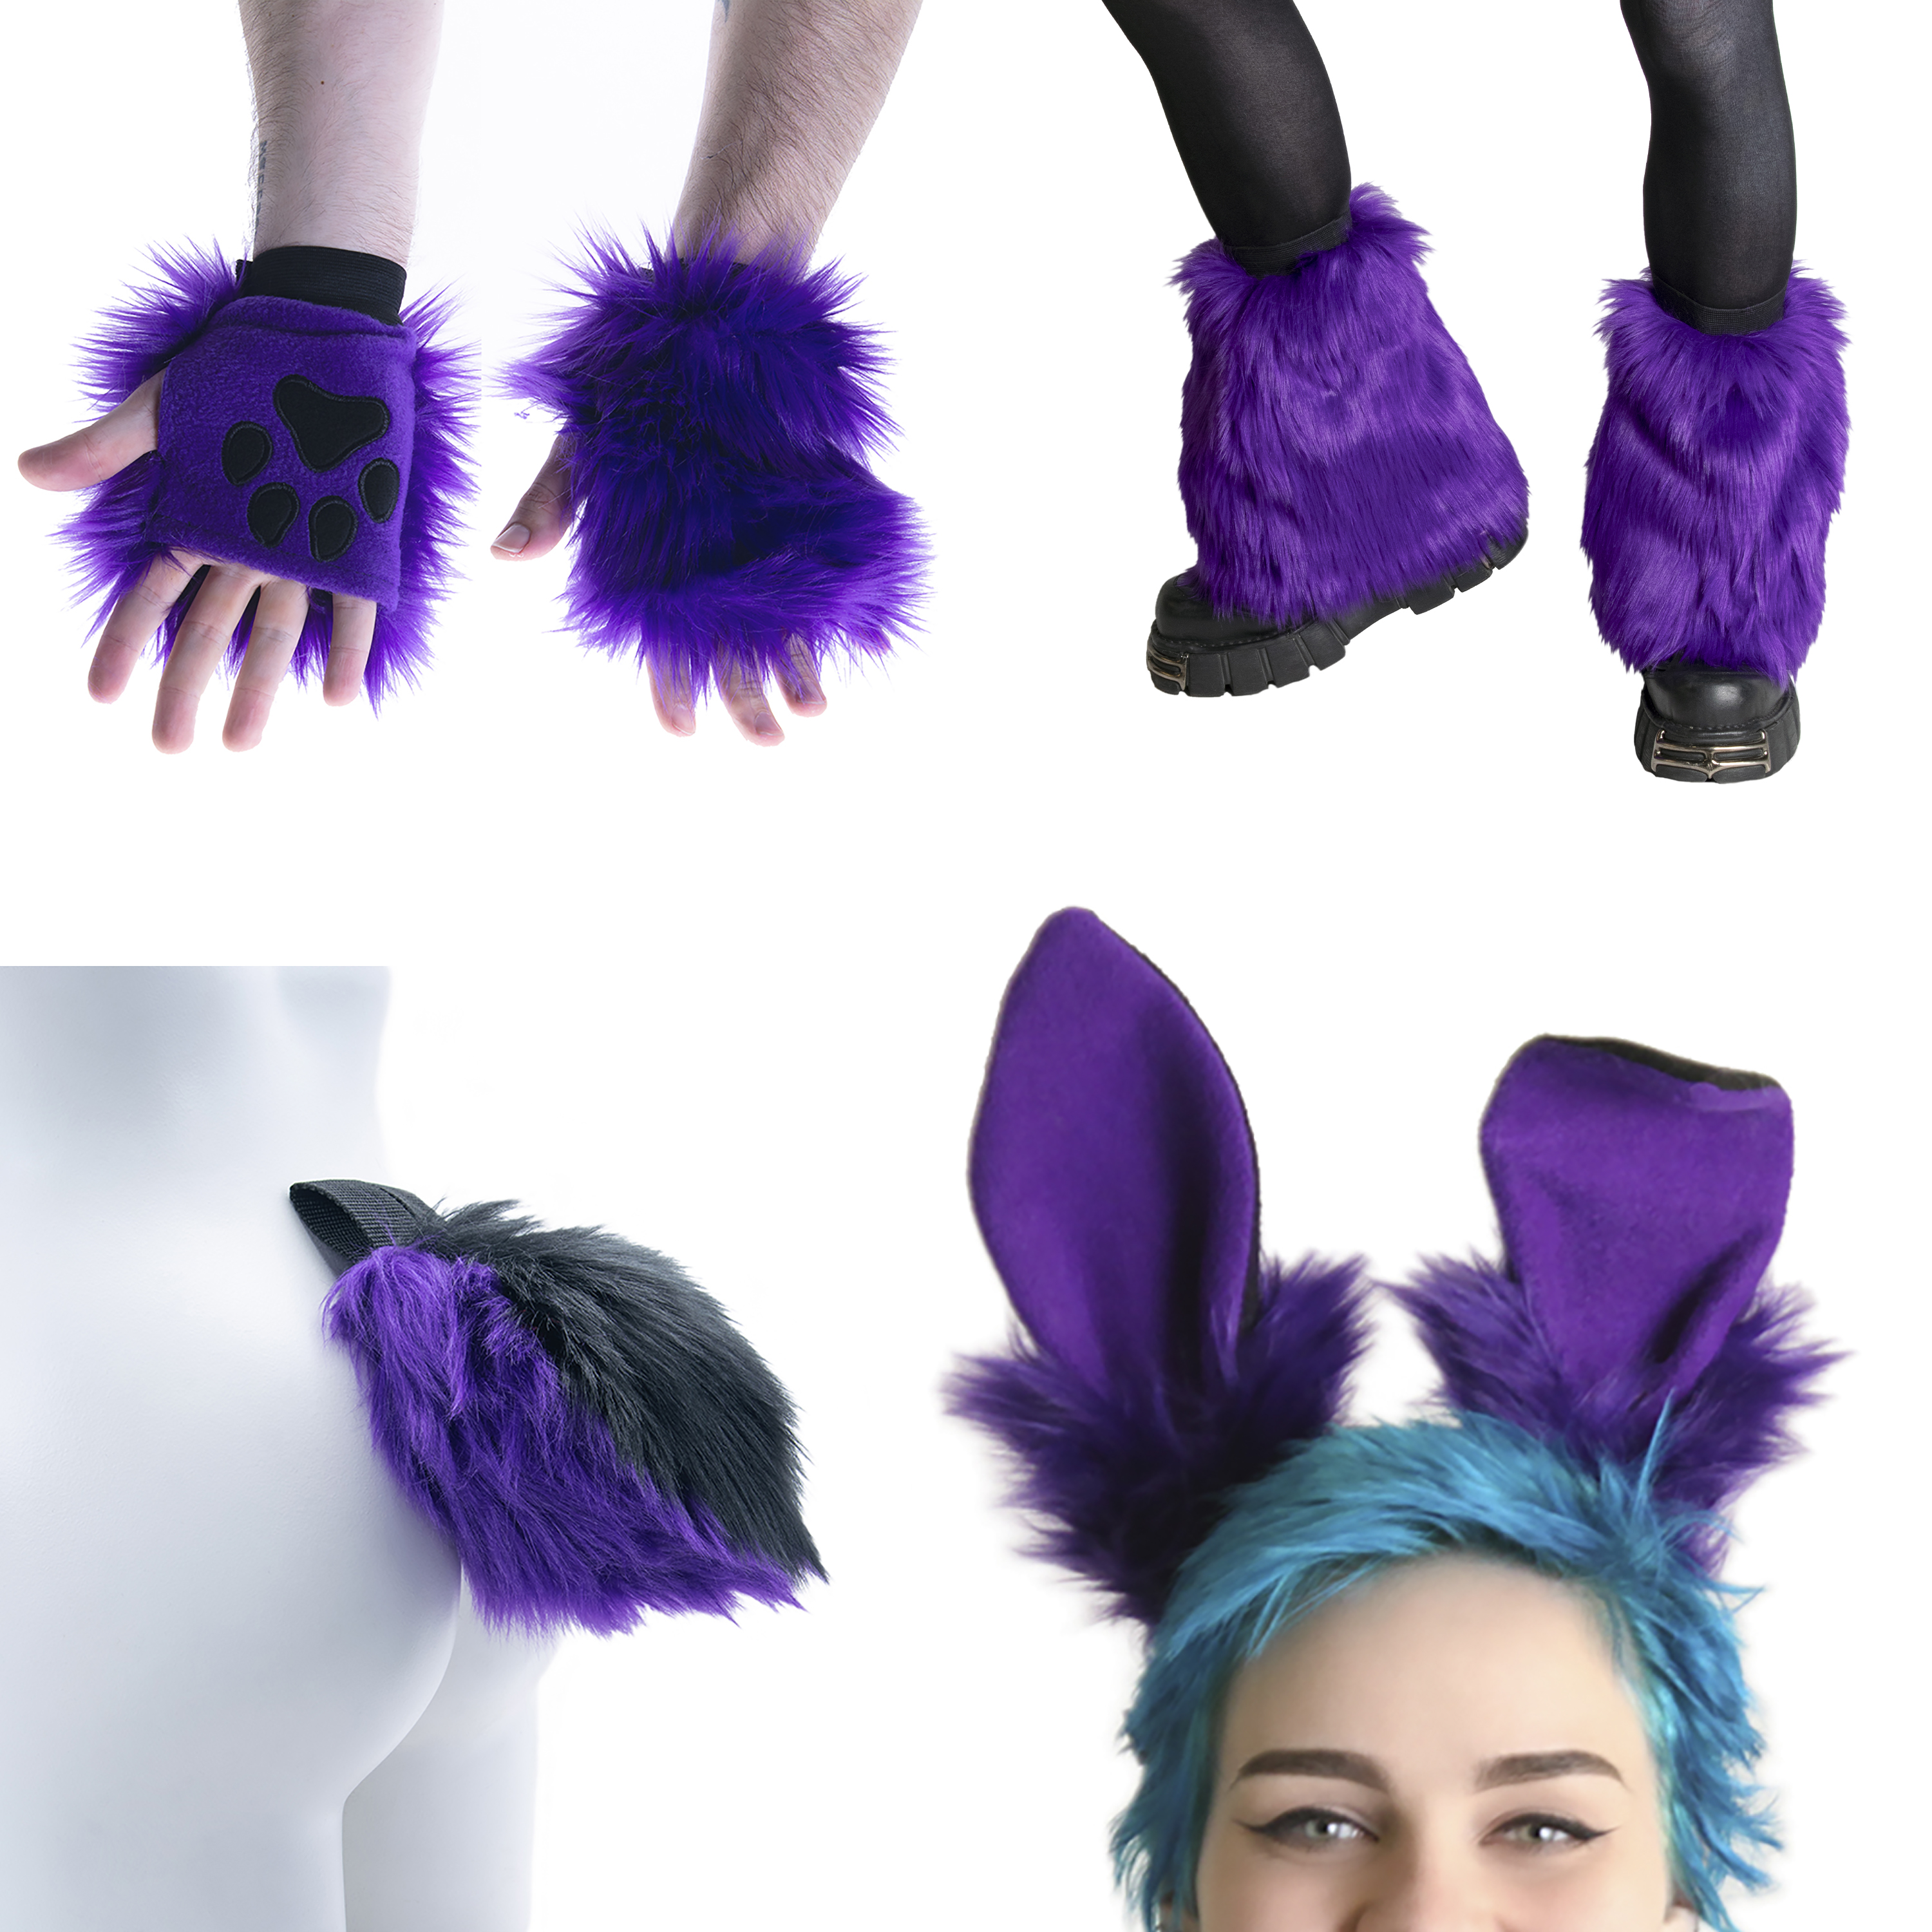 Uppy Bunny Ear, Tail, Cuff, Warmer Mini Combo